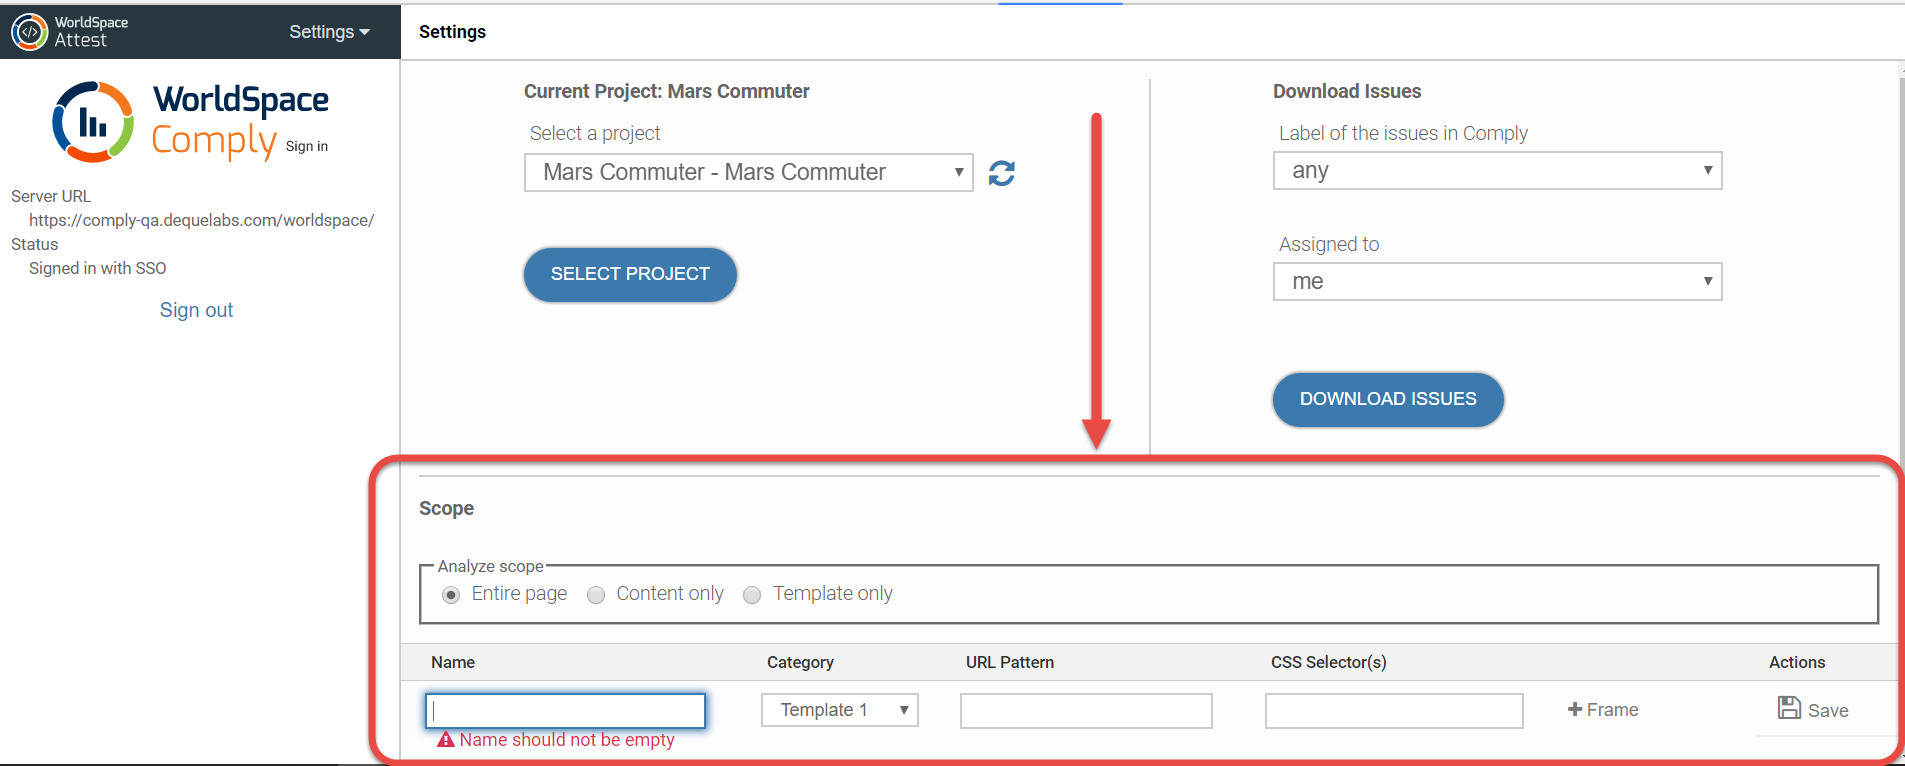 the location of the Scope section at the bottom of the Settings panel appearing below the project selection and issue download sections after signing in and selecting a project